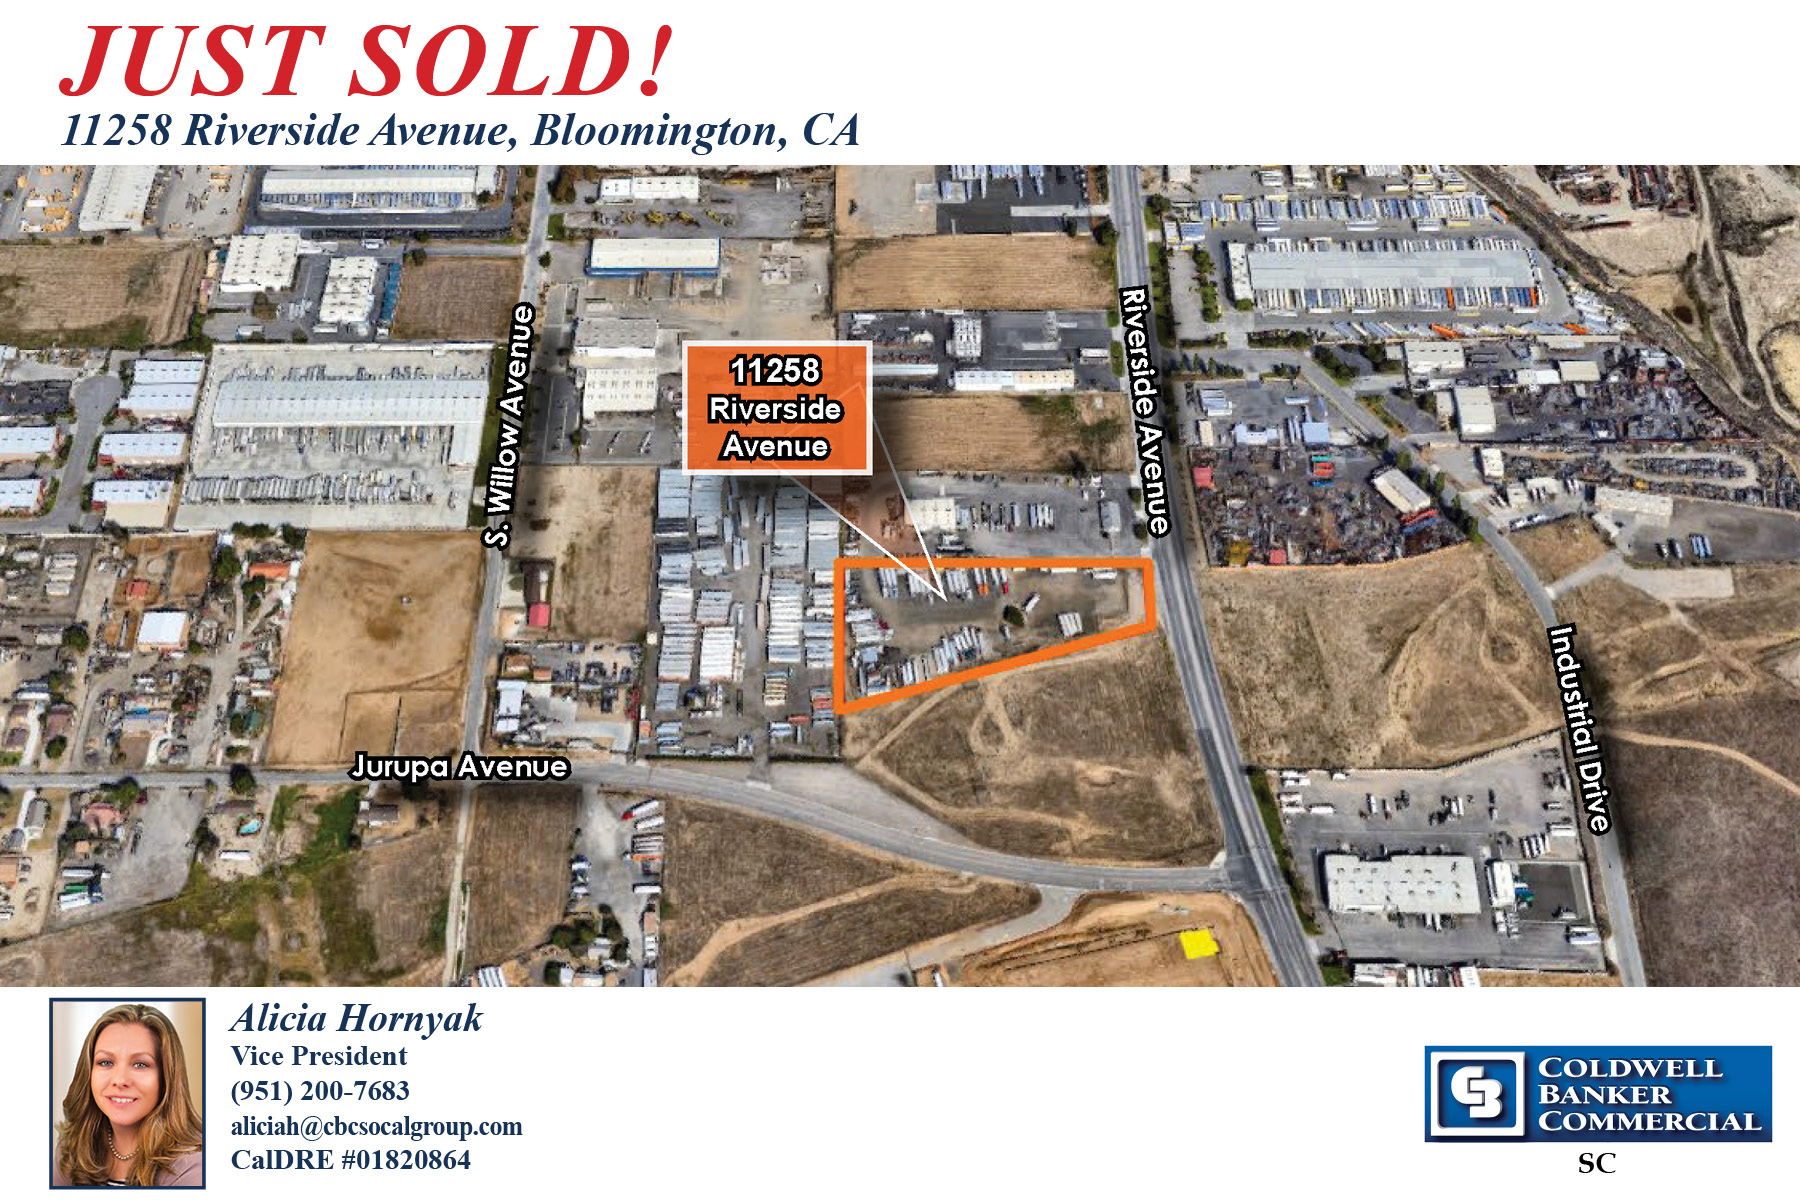 SOLD! ±3.58 Acres of Industrial Vacant Land in Bloomington